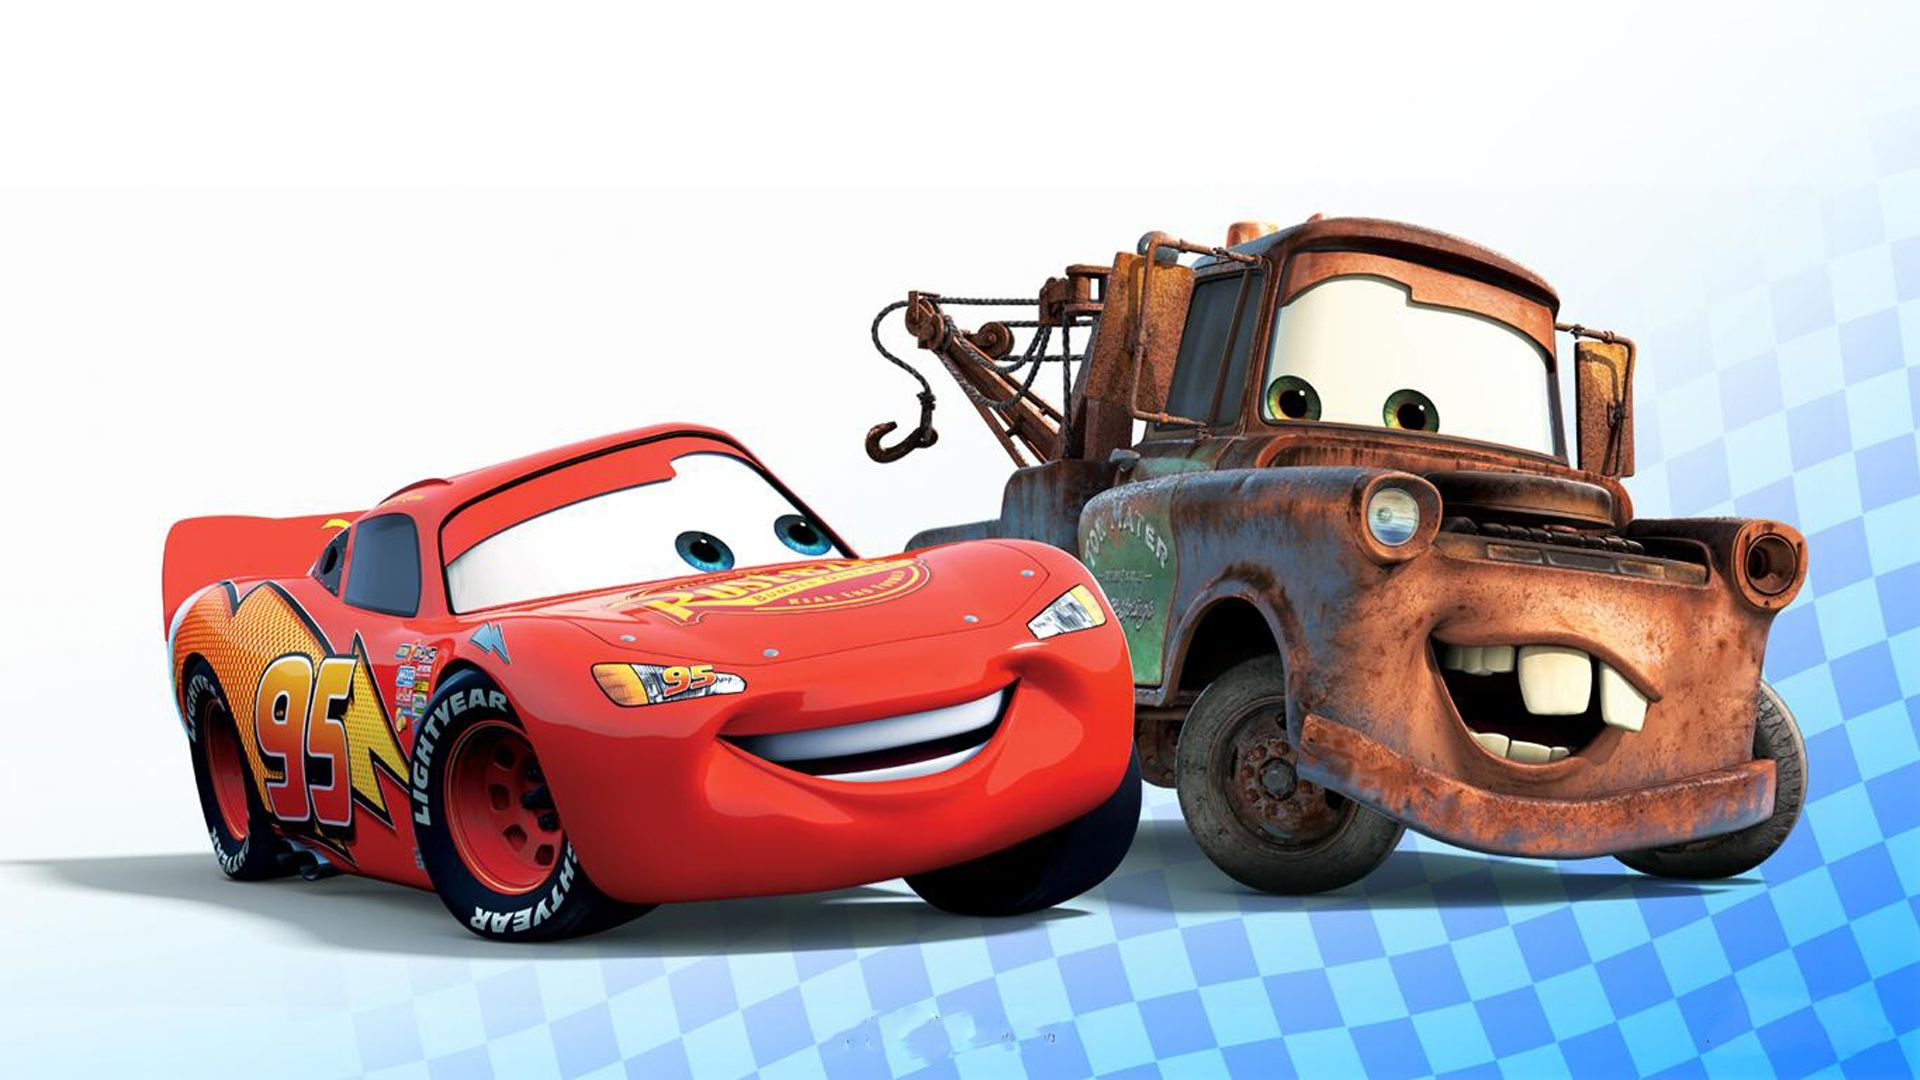 Pin De Eunice Lerin Em Cars Disney Movie Night Filme Carros Da Disney Carros Da Disney Painel Carro